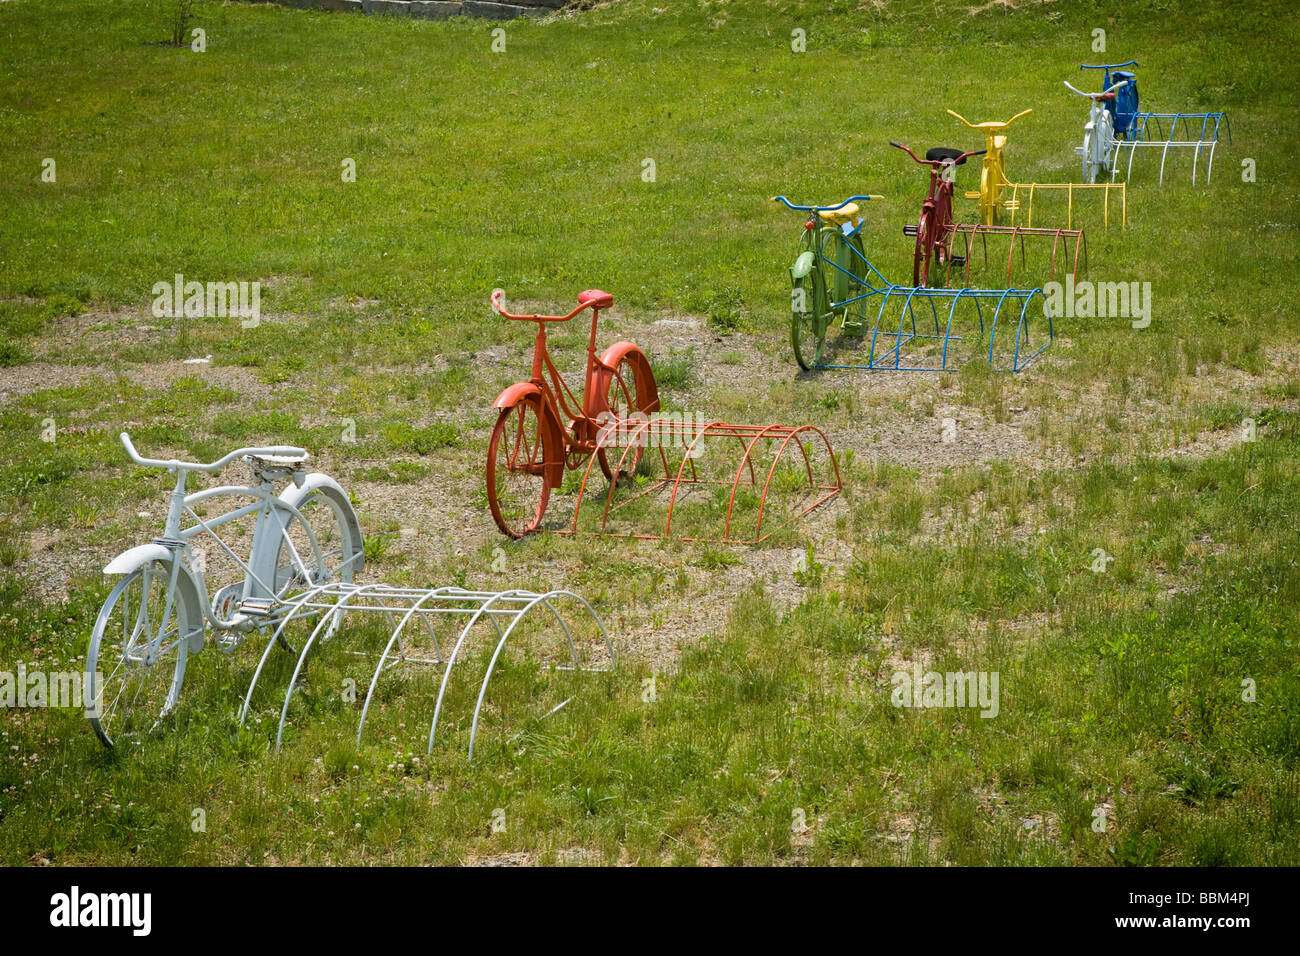 Colorful painted bikes decoration at a bike shop Schuylerville New York Saratoga County - Stock Image